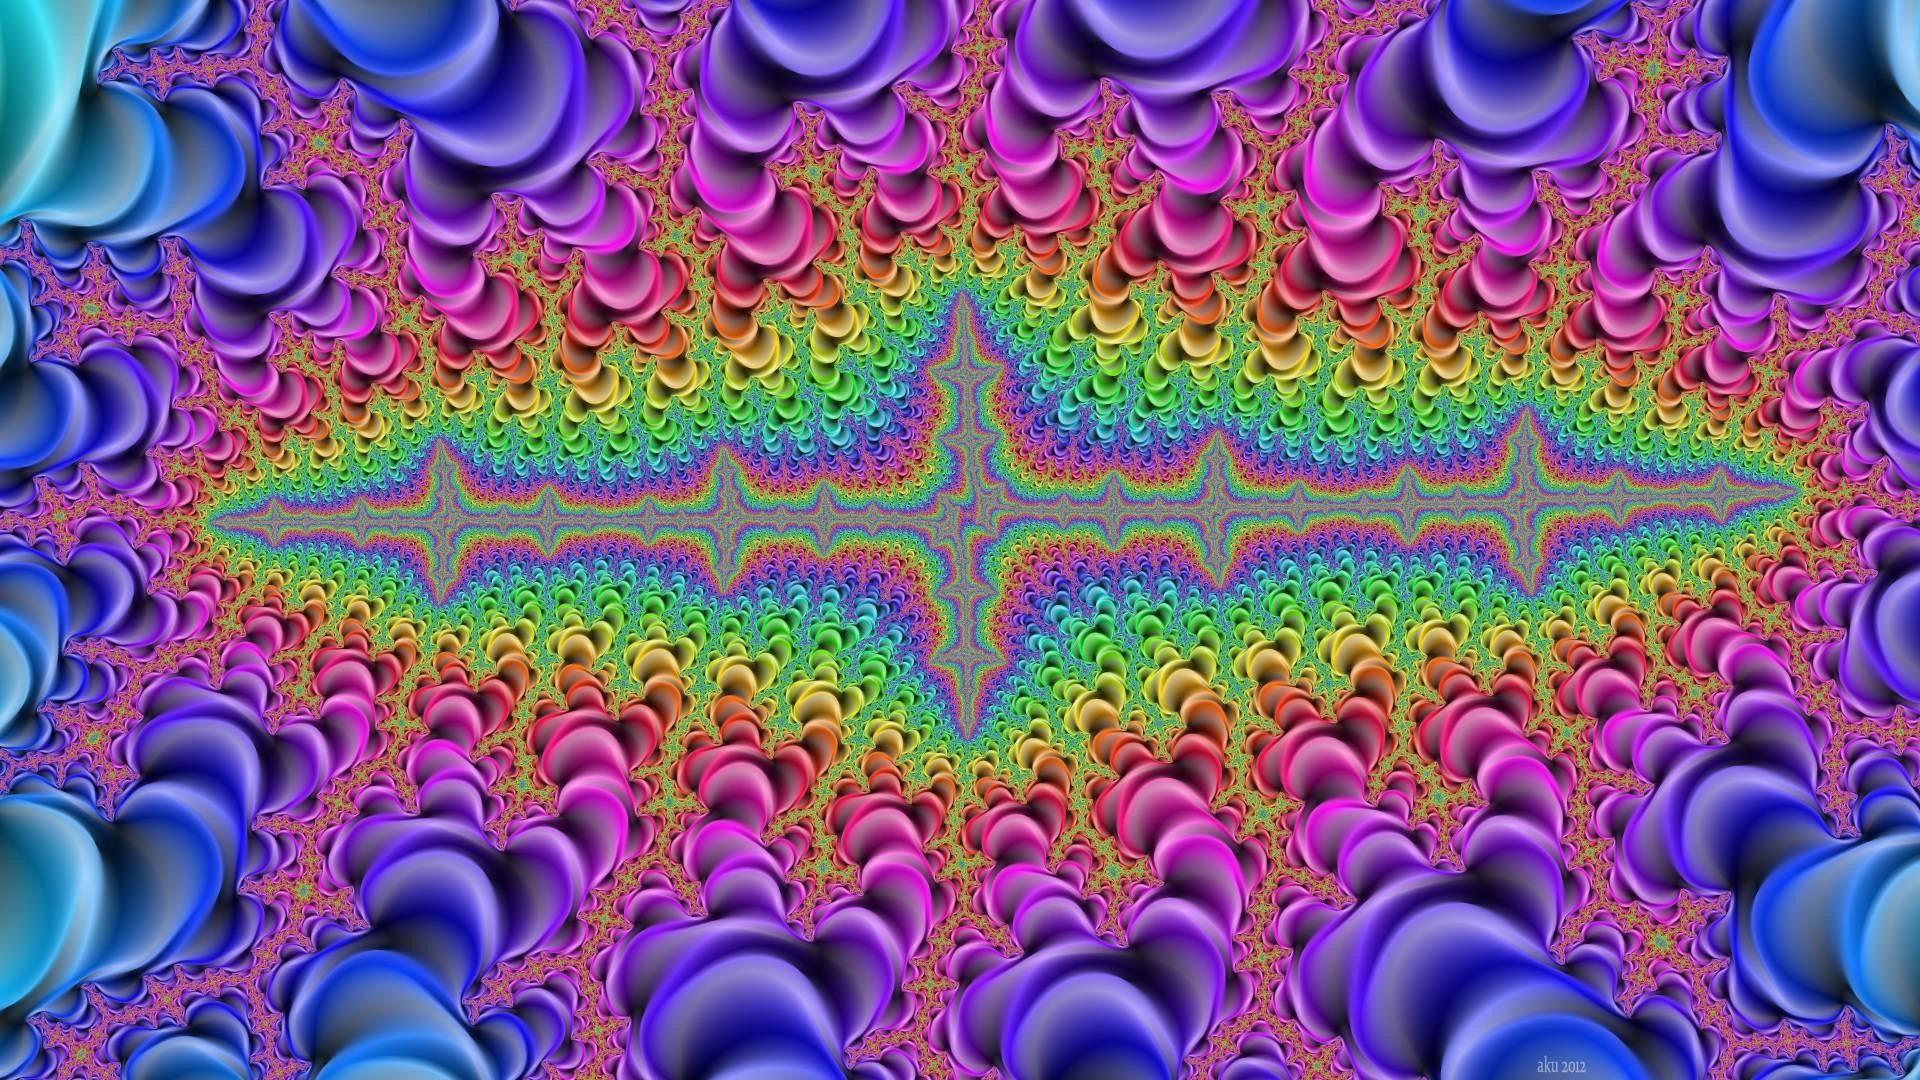 1920x1080 Psychedelic-HD-Backgrounds-wallpaper-wp40010951